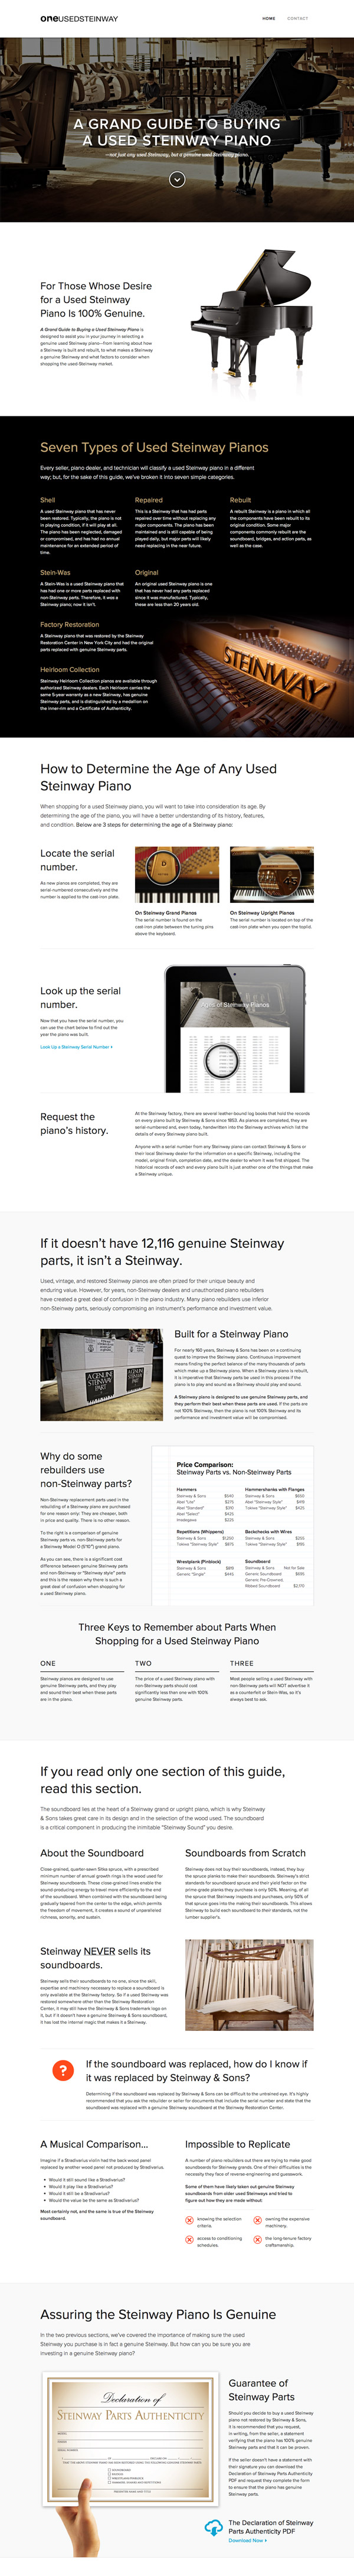 A Grand Guide to Buying a Used Steinway Website Screenshot